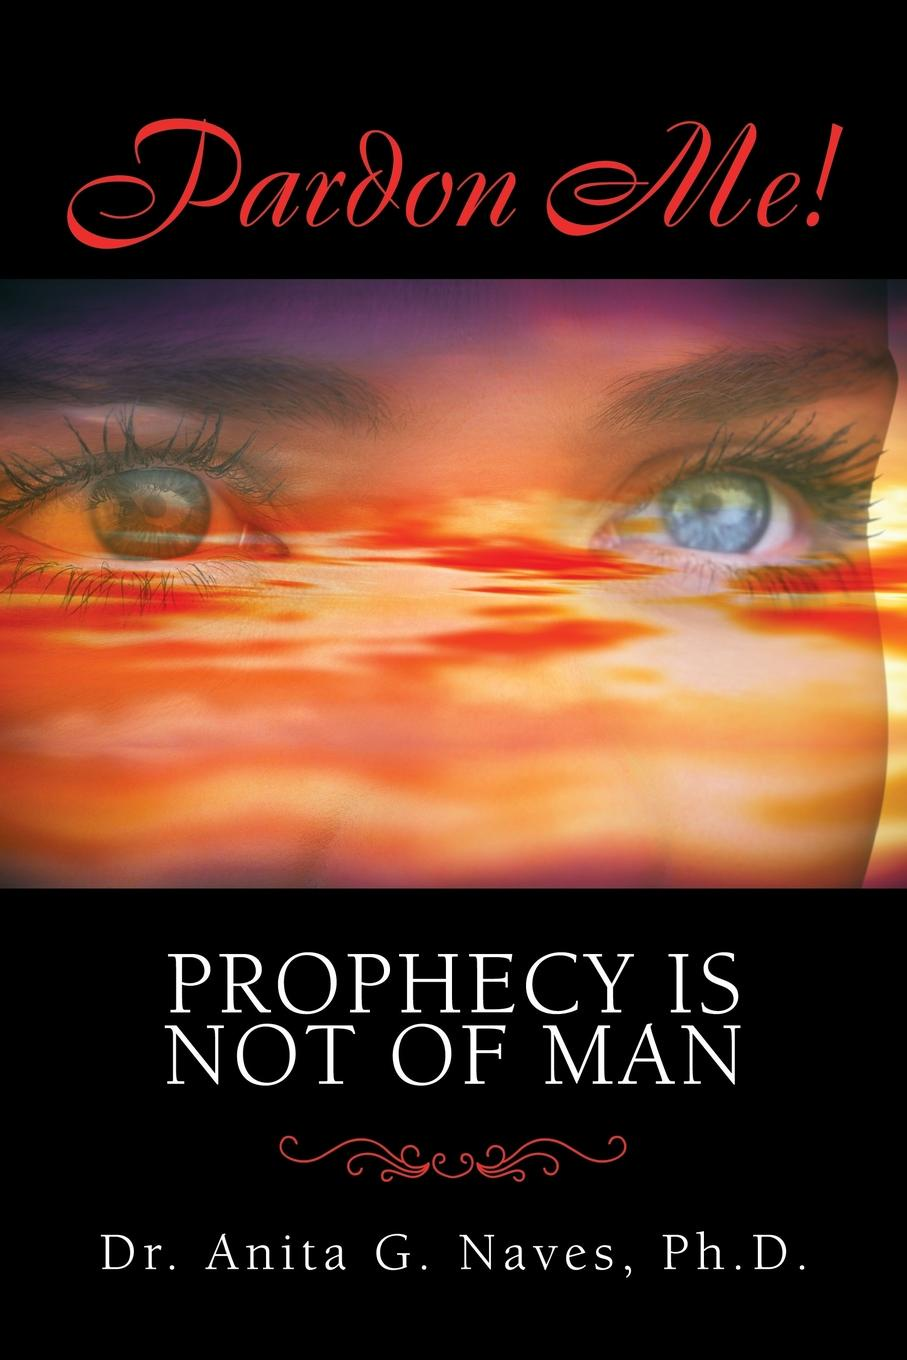 Dr. Anita G. Naves Pardon Me. Prophecy Is Not of Man. A Basic Spiritual Guide to Understanding the Divine Gift of the Ministry of Prophecy, Its Powers, Its Purpose and Its Prophets jenni wiltz the carmelite prophecy a natalie brandon thriller